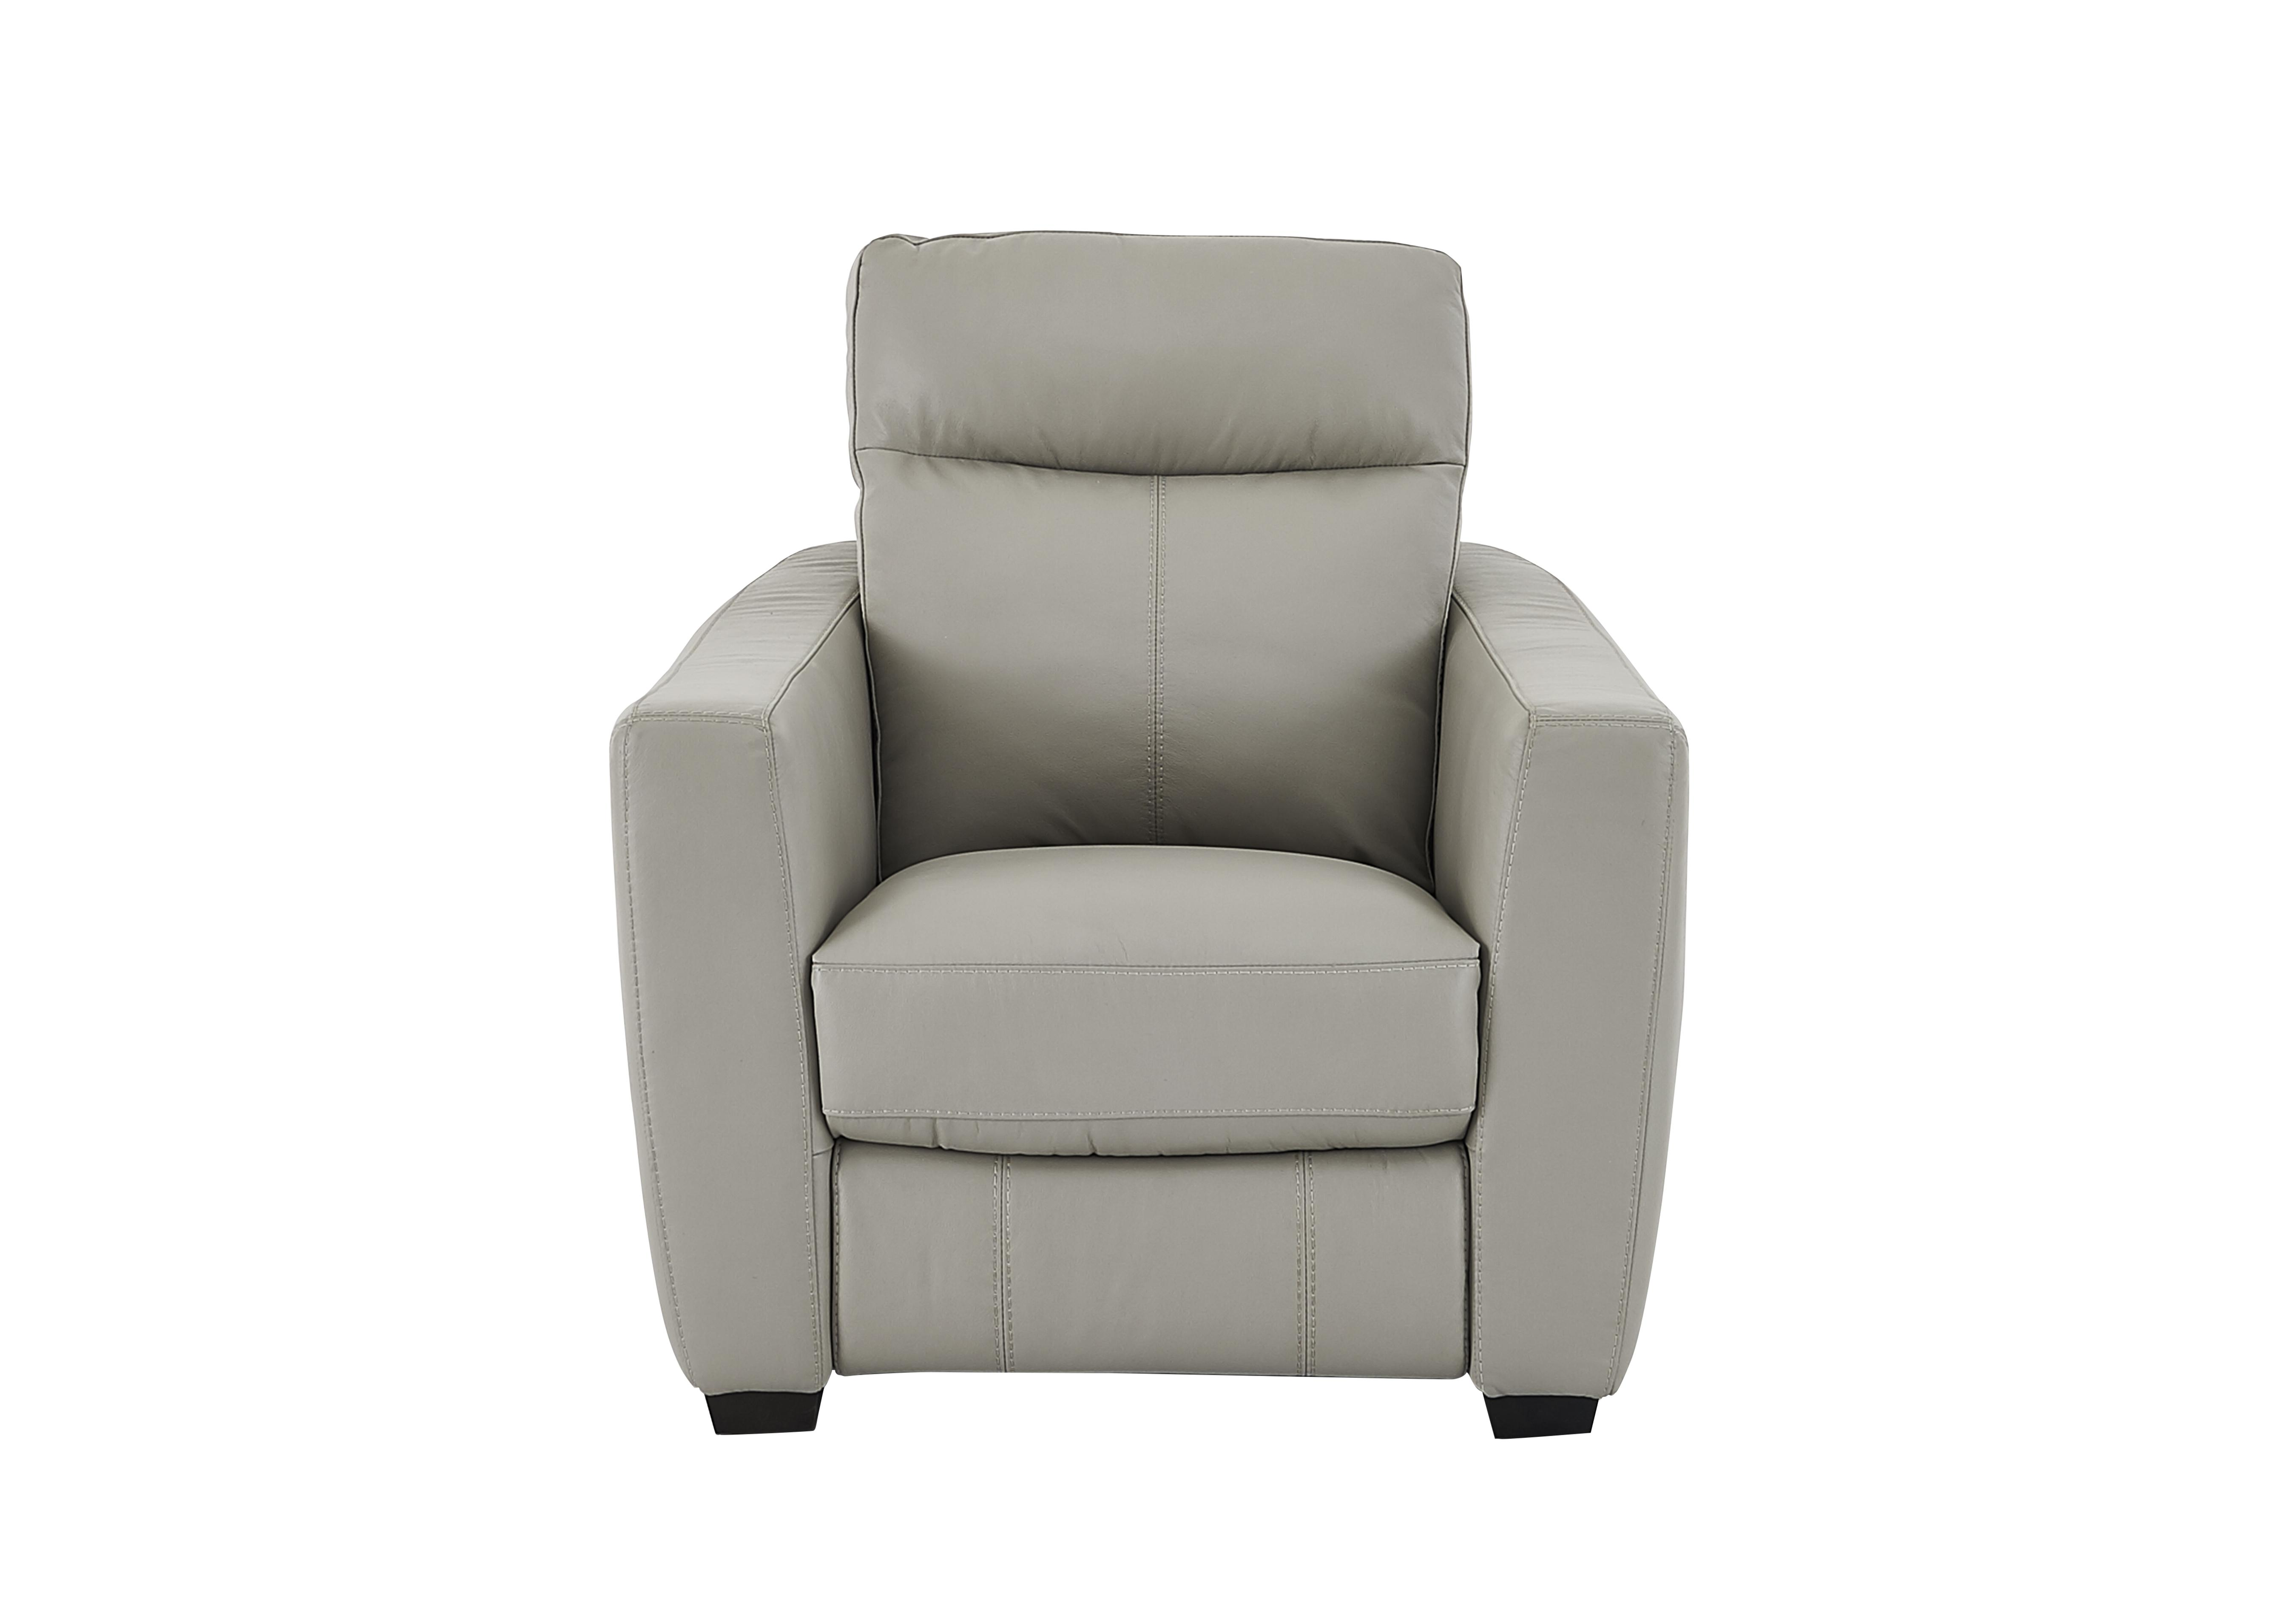 Recliner armchairs - Furniture Village